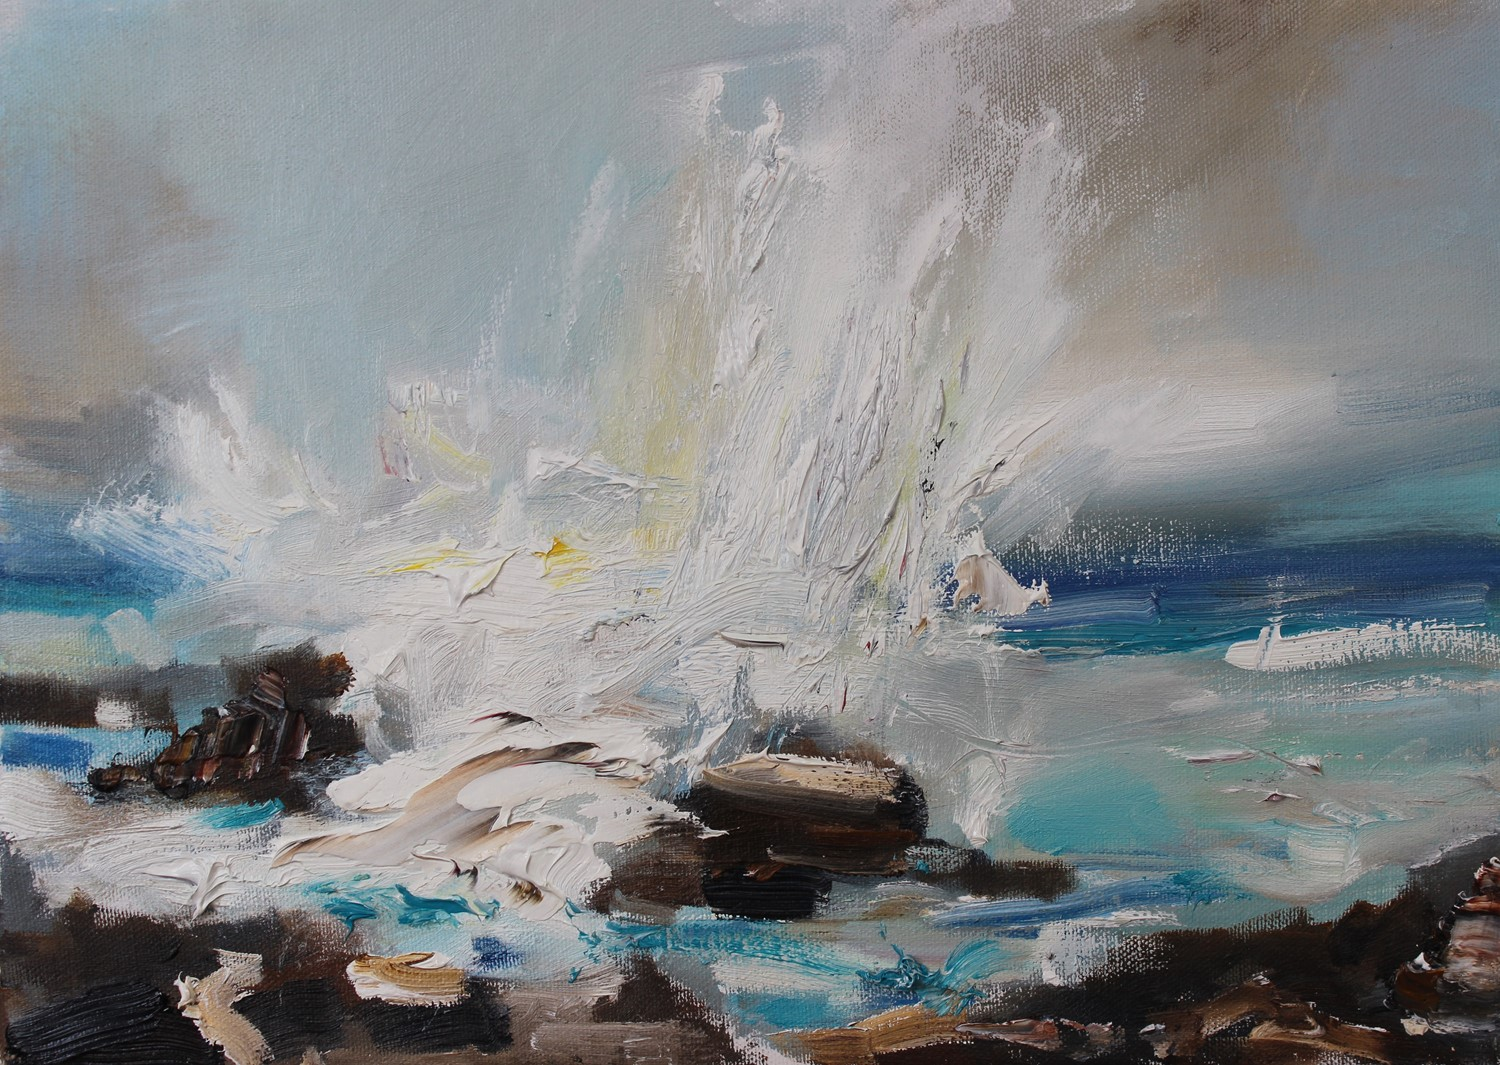 'Waves Crashing Ashore' by artist Rosanne Barr